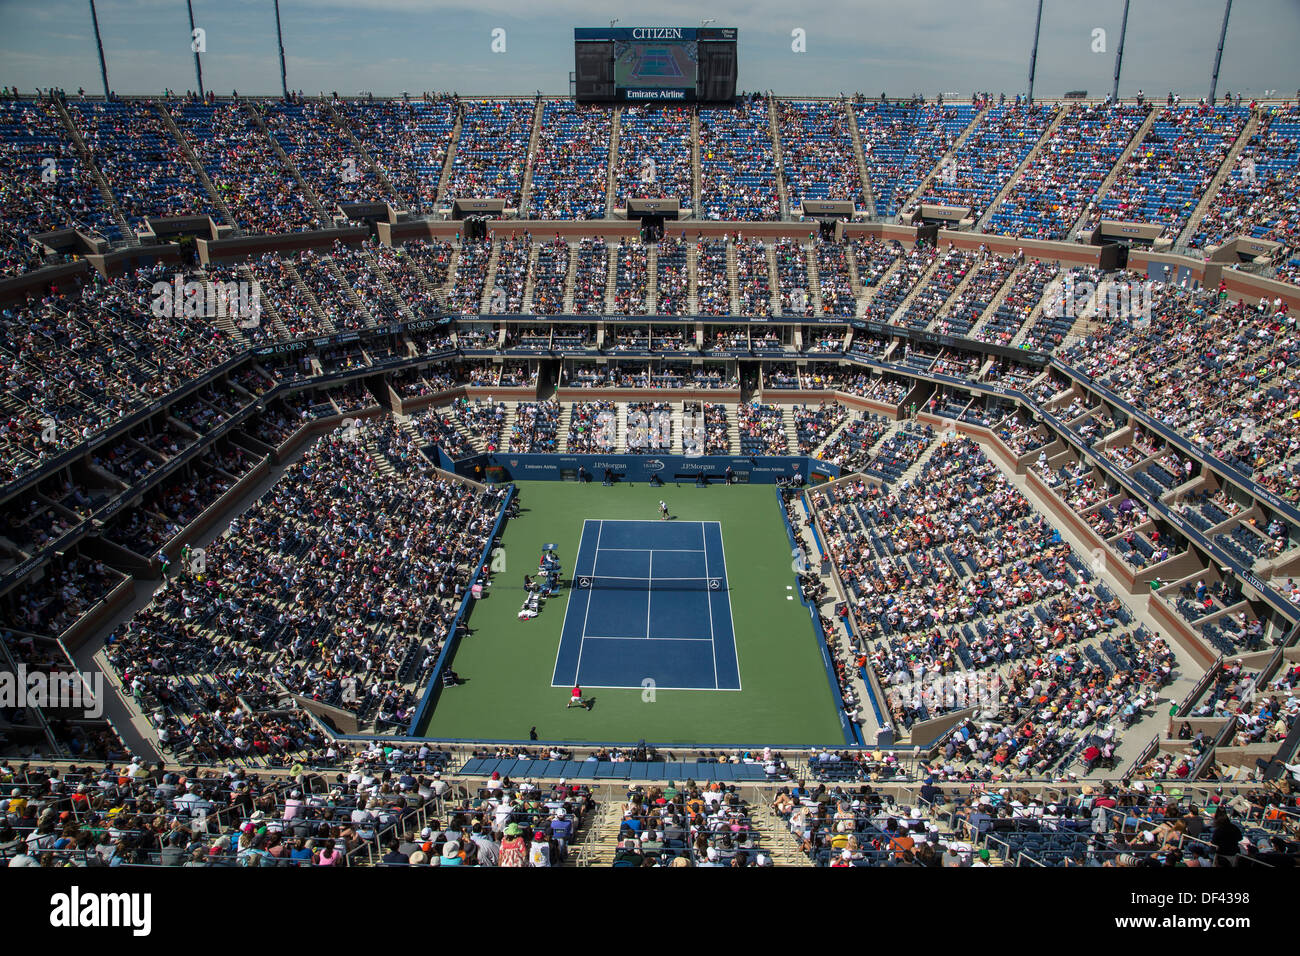 Arthur Ashe Stadium at the Billie Jean King National Tennis Center during the 2013 US Open Tennis Championships - Stock Image